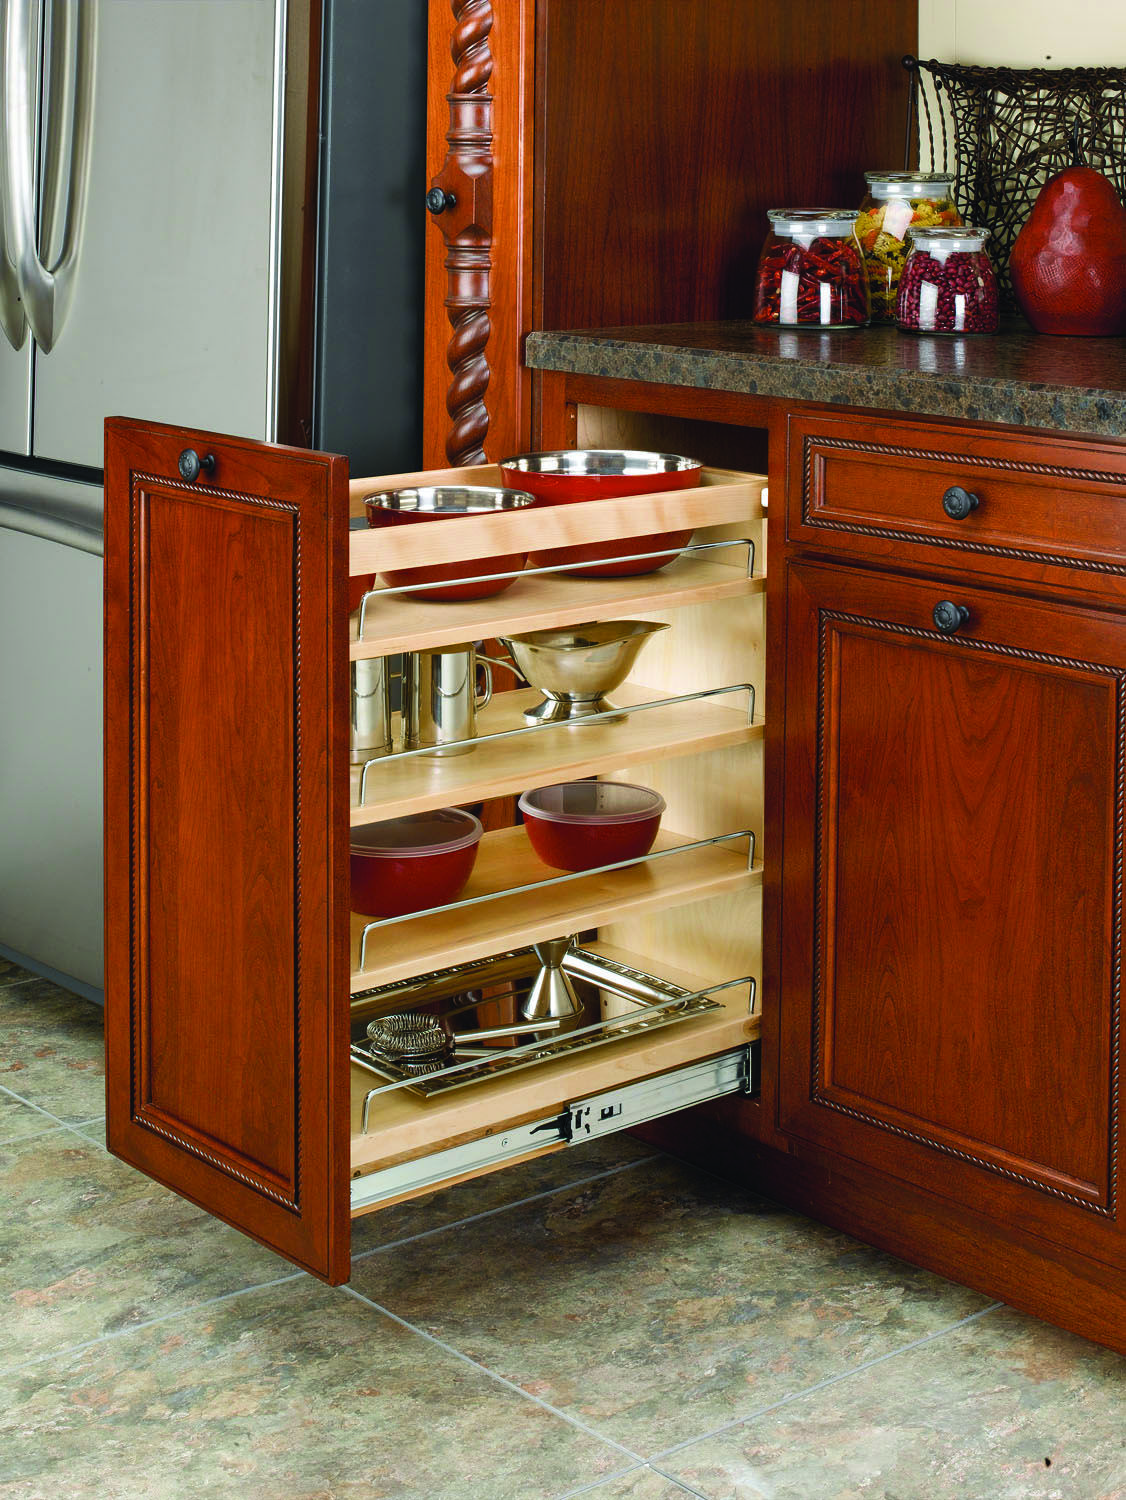 revashelf lazy susans optimize your cupboards each design offers the perfect choice whether you choose the half moon lazy susan or the